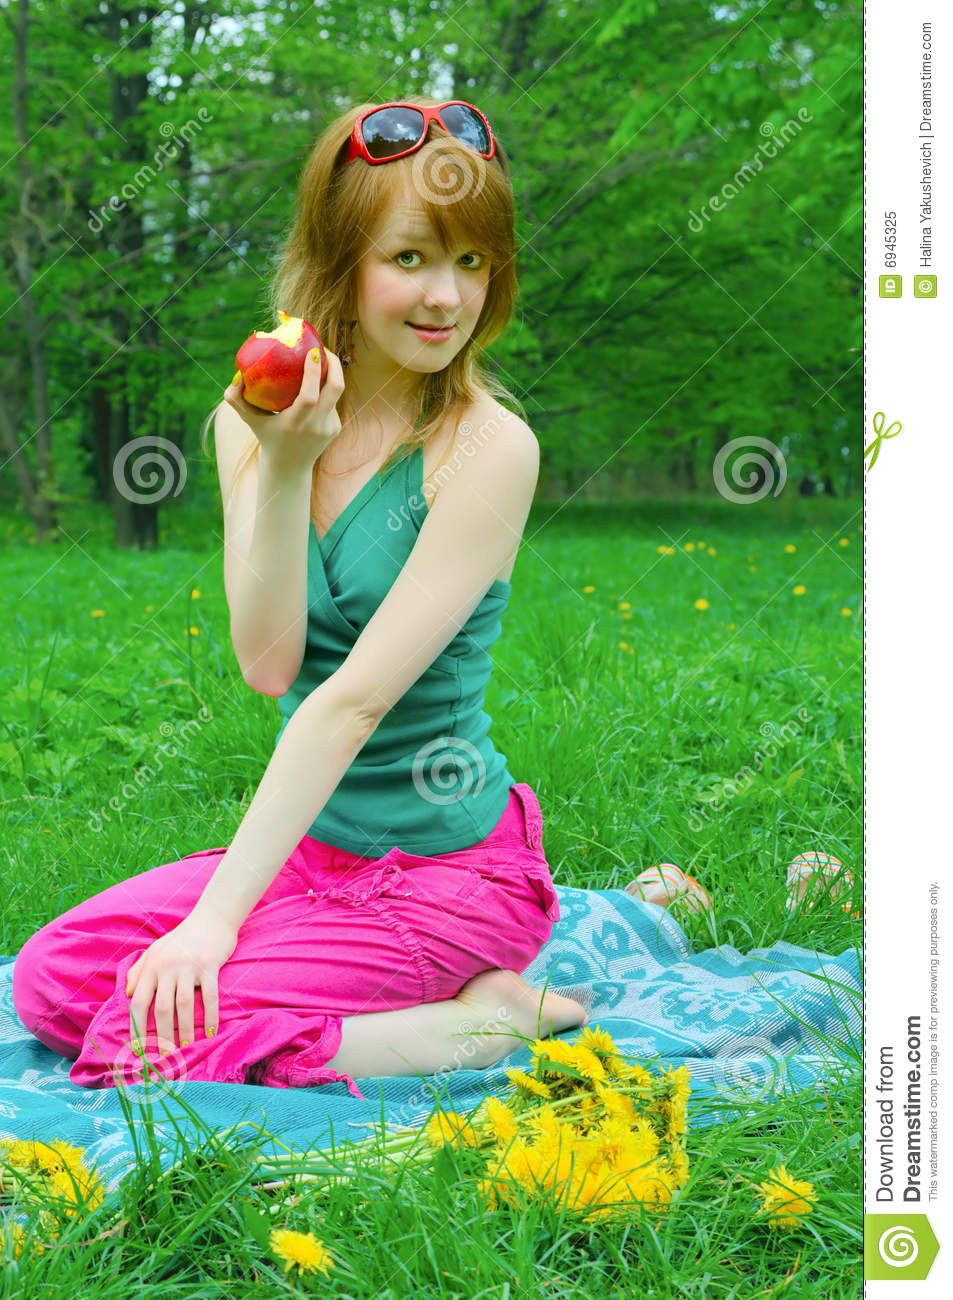 Girl with apple on coverlet